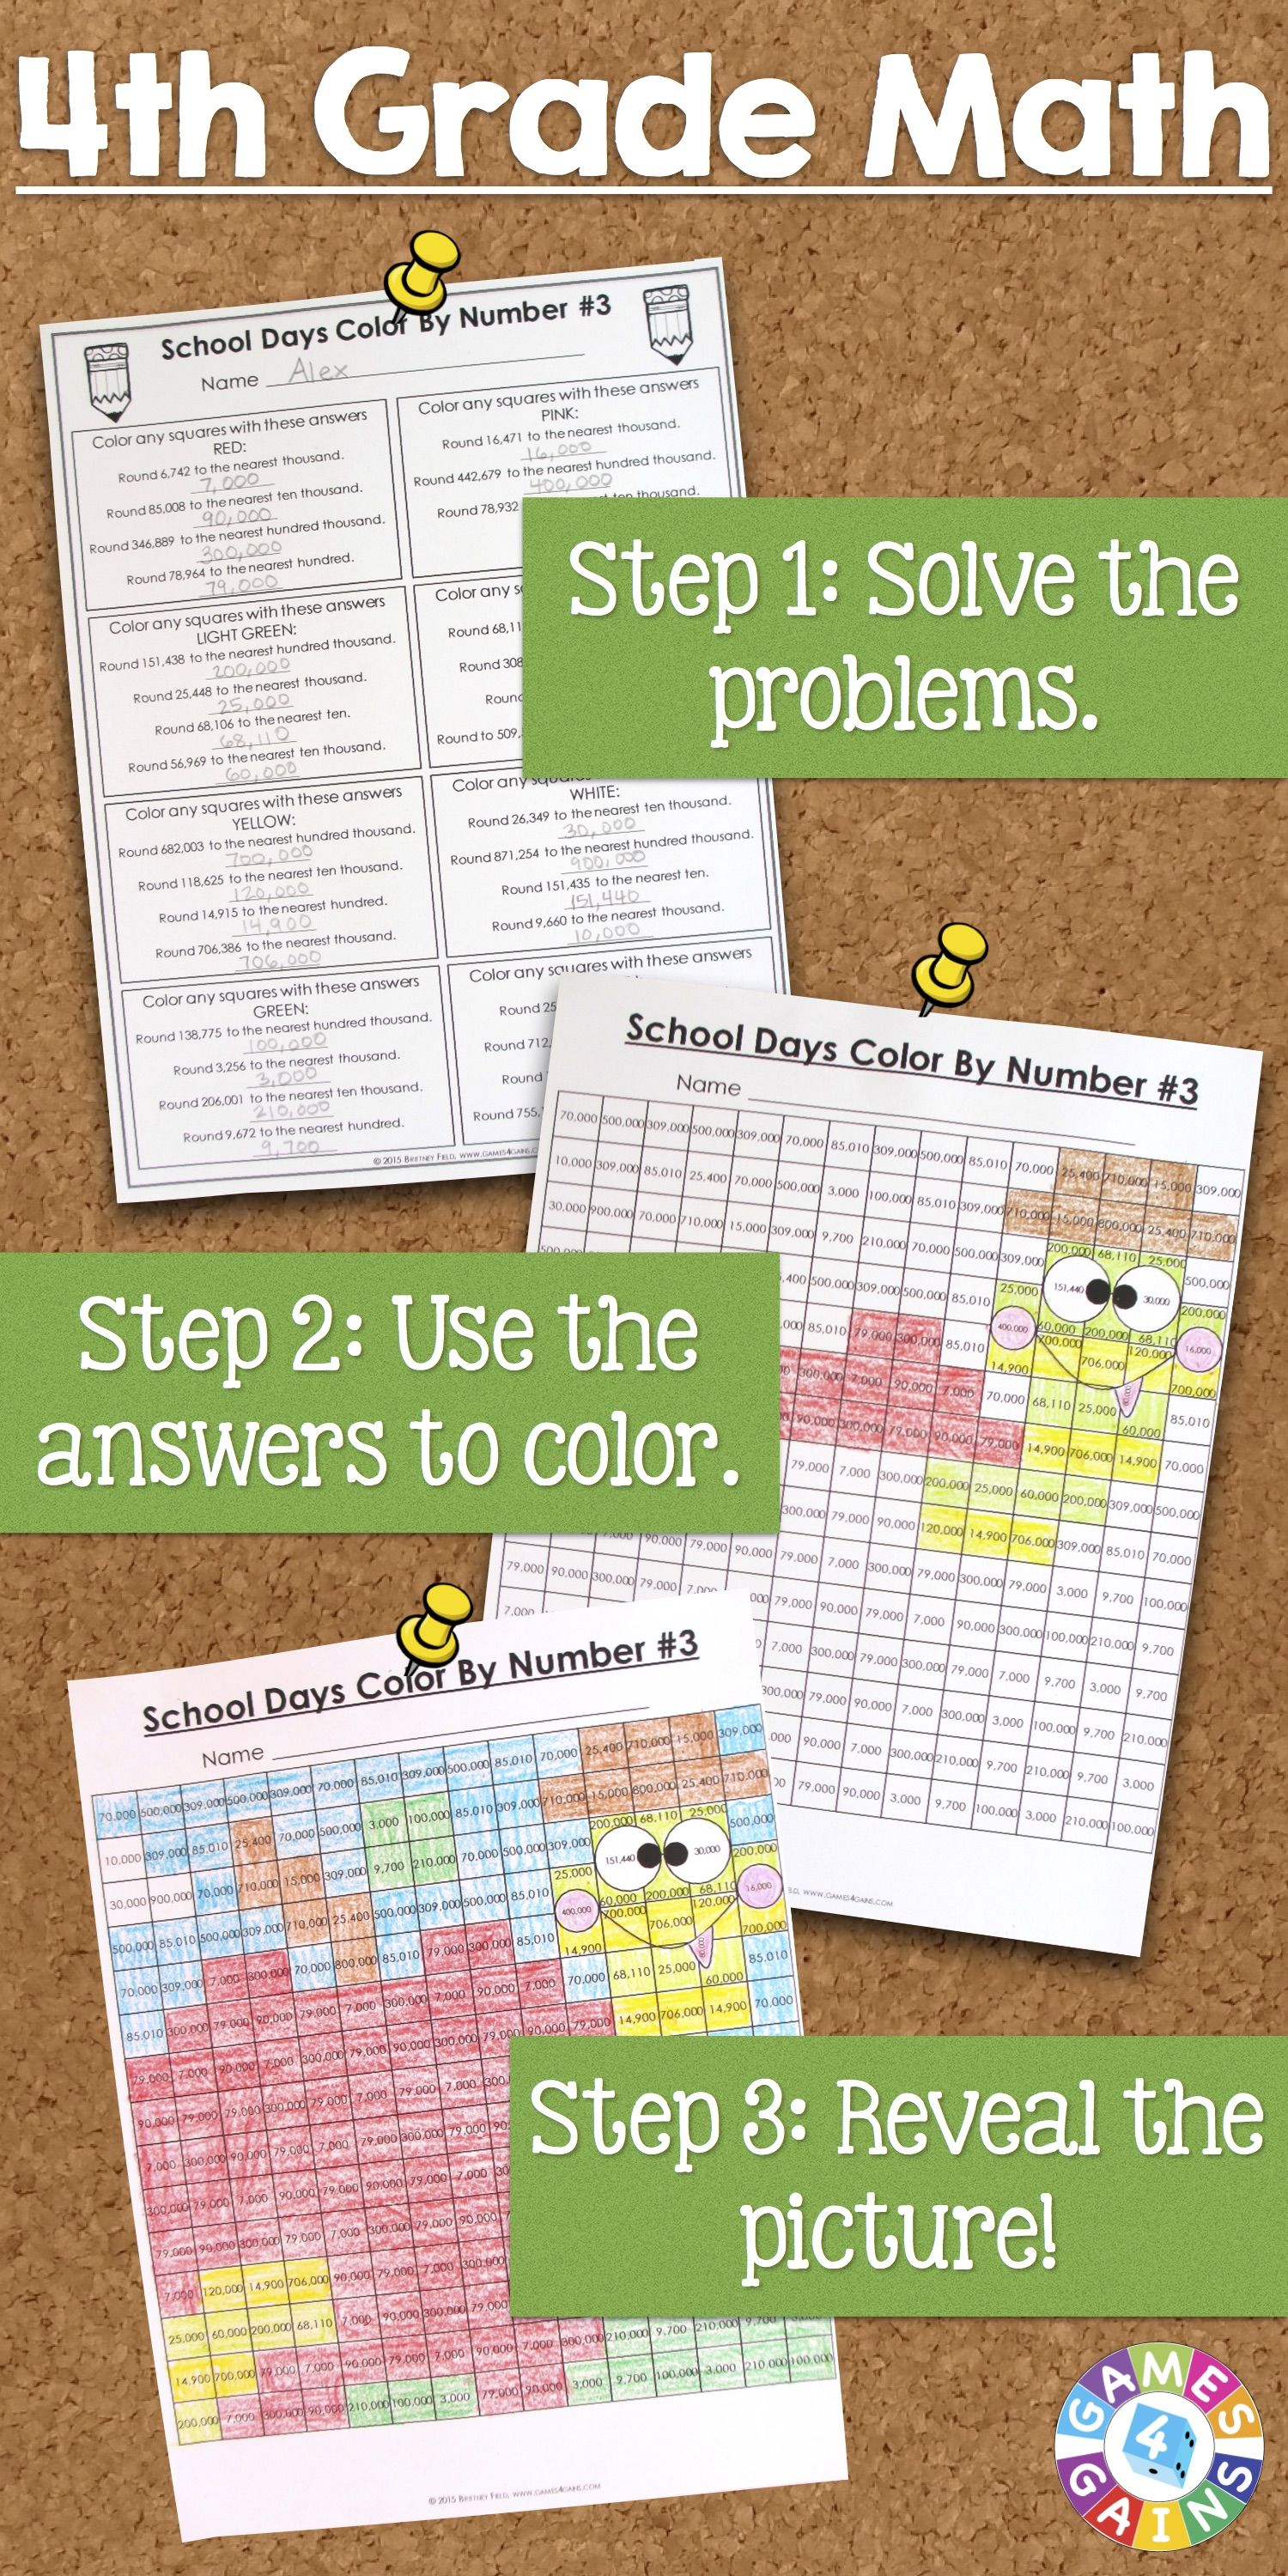 medium resolution of 4th Grade Place Value Worksheets (5th Grade Back to School Math Review)   4th  grade math